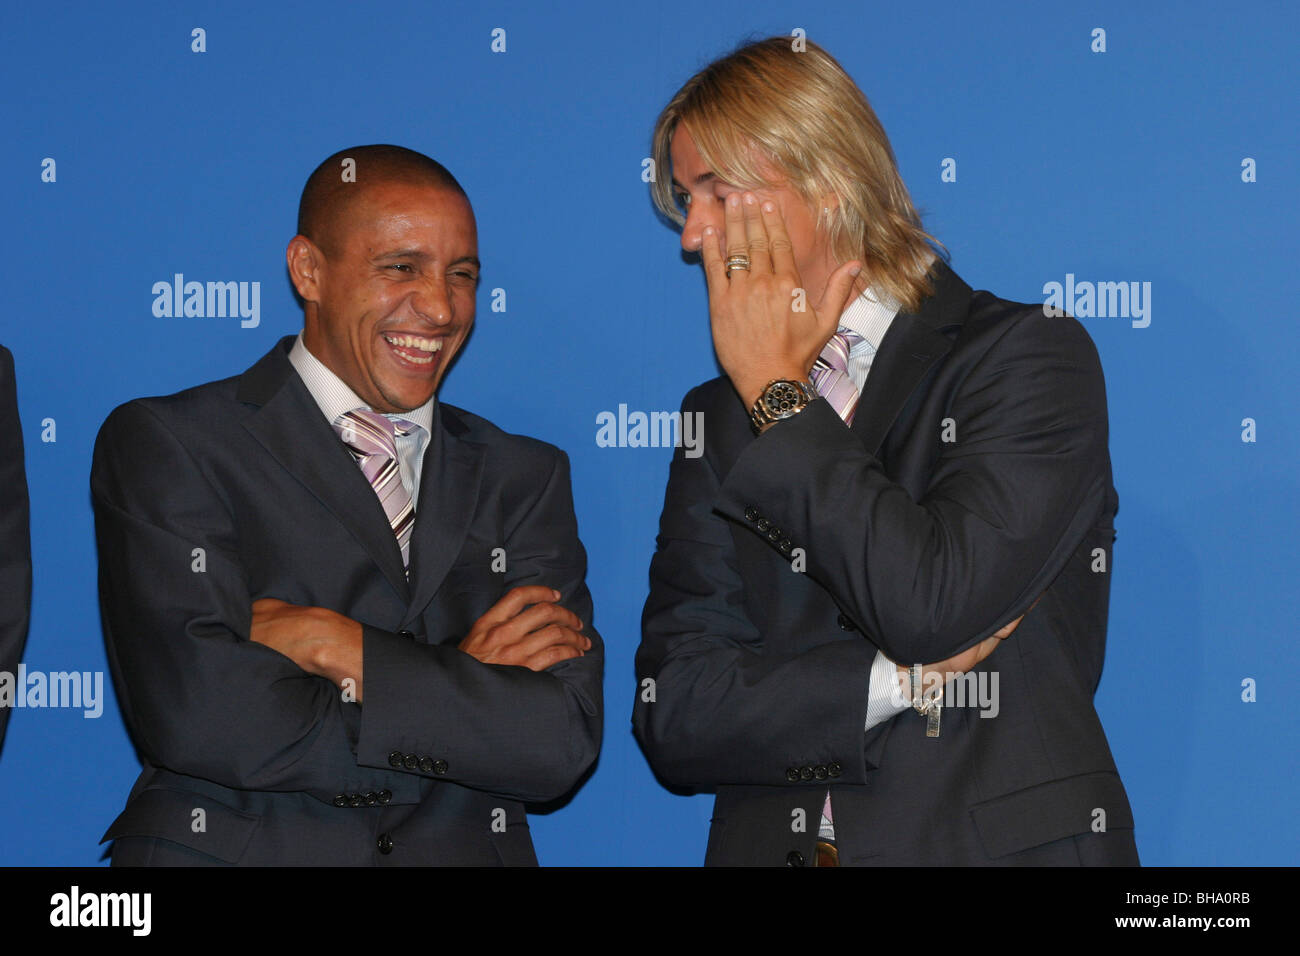 Roberto Carlos (left) and Jose Maria Gutierrez, football players with Real Madrid. In Tokyo, Japan. - Stock Image